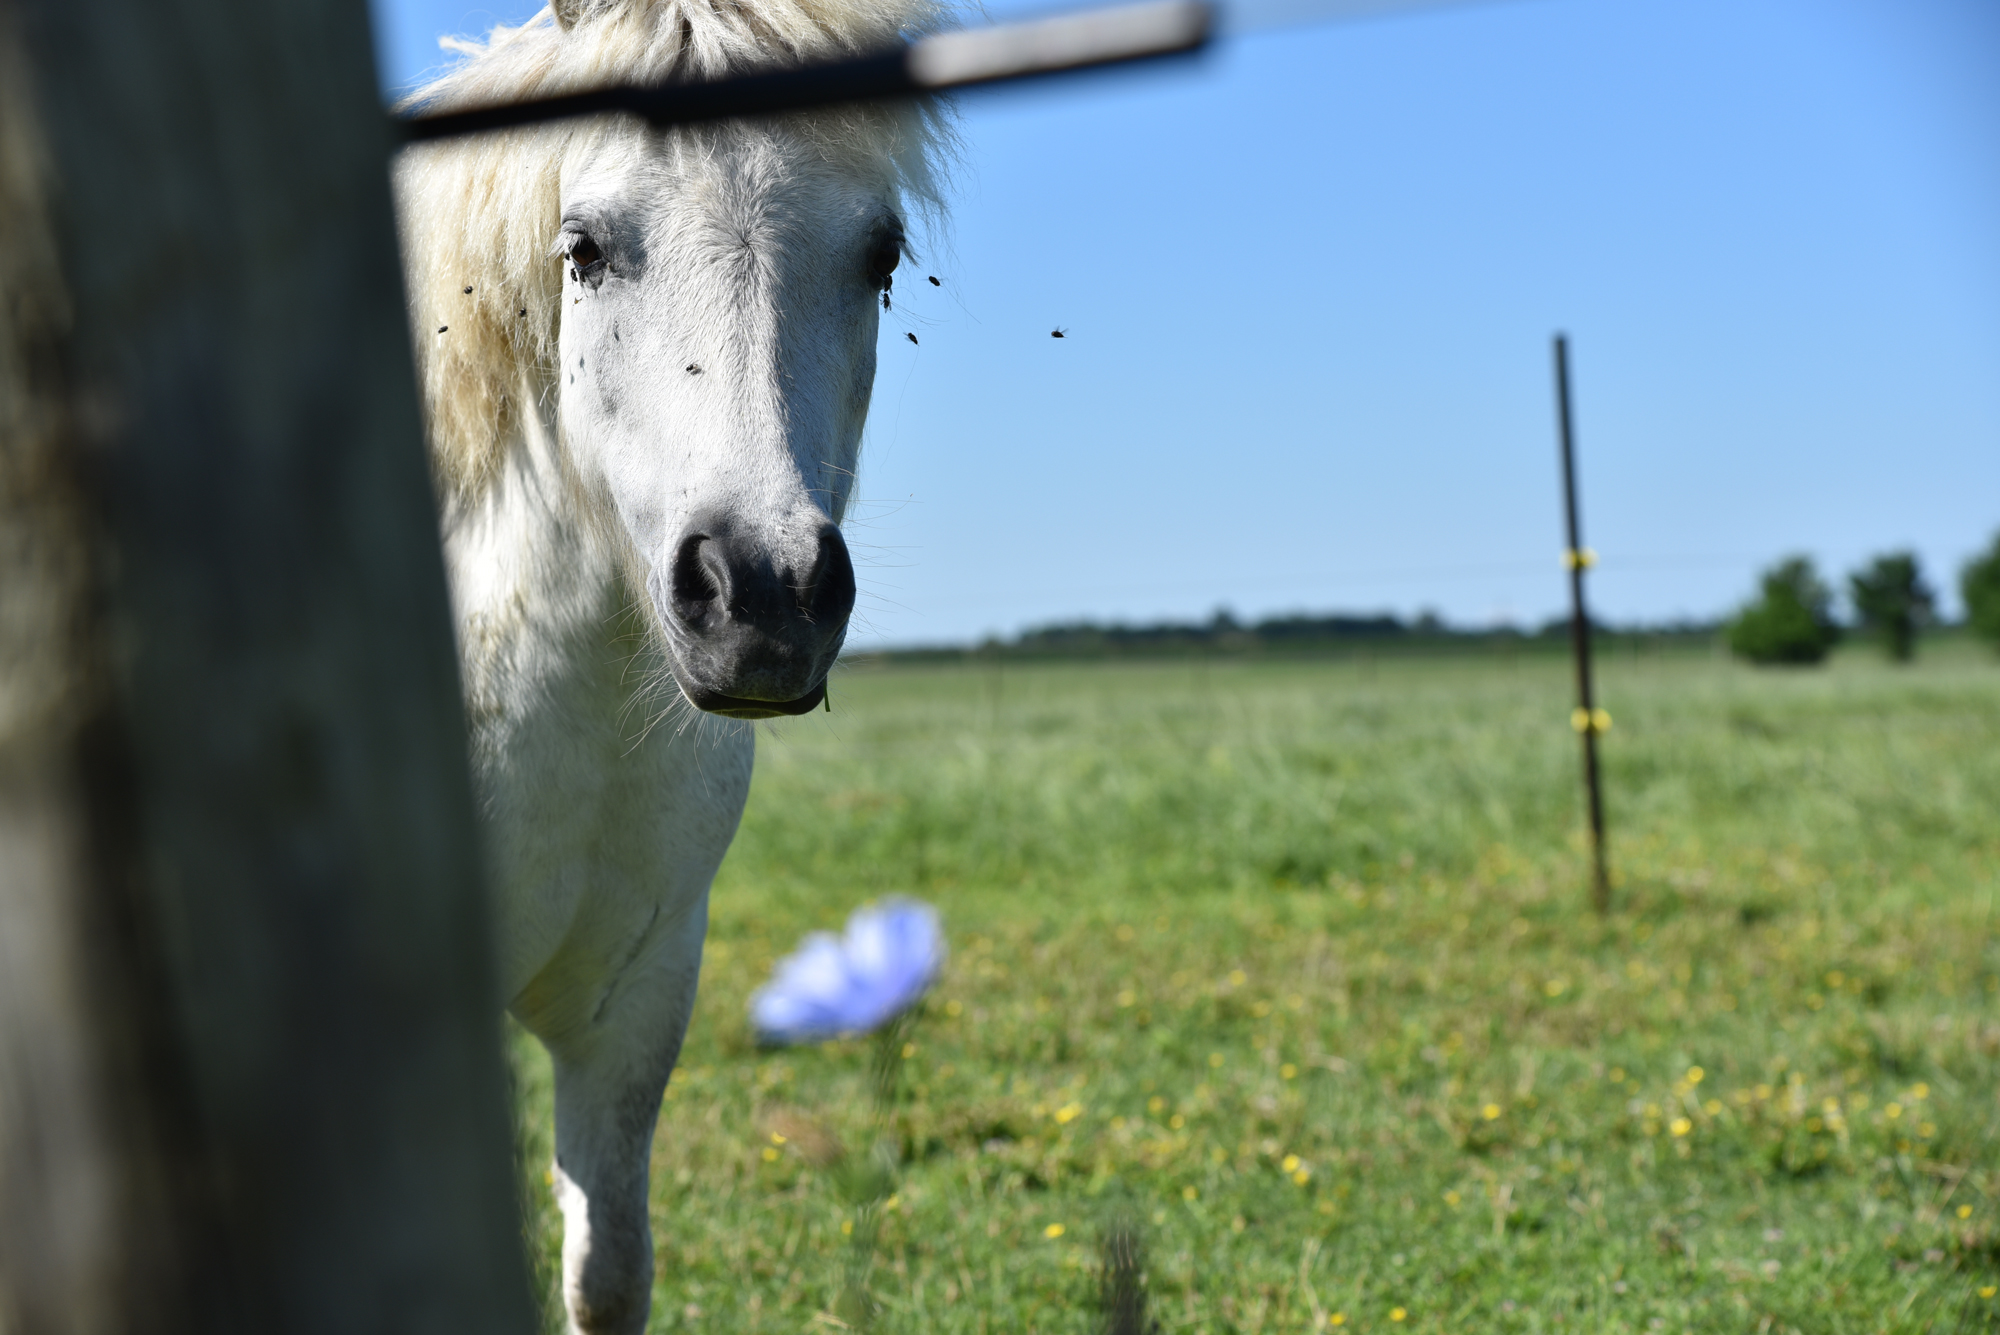 Crow Vineyard & Winery Ponies